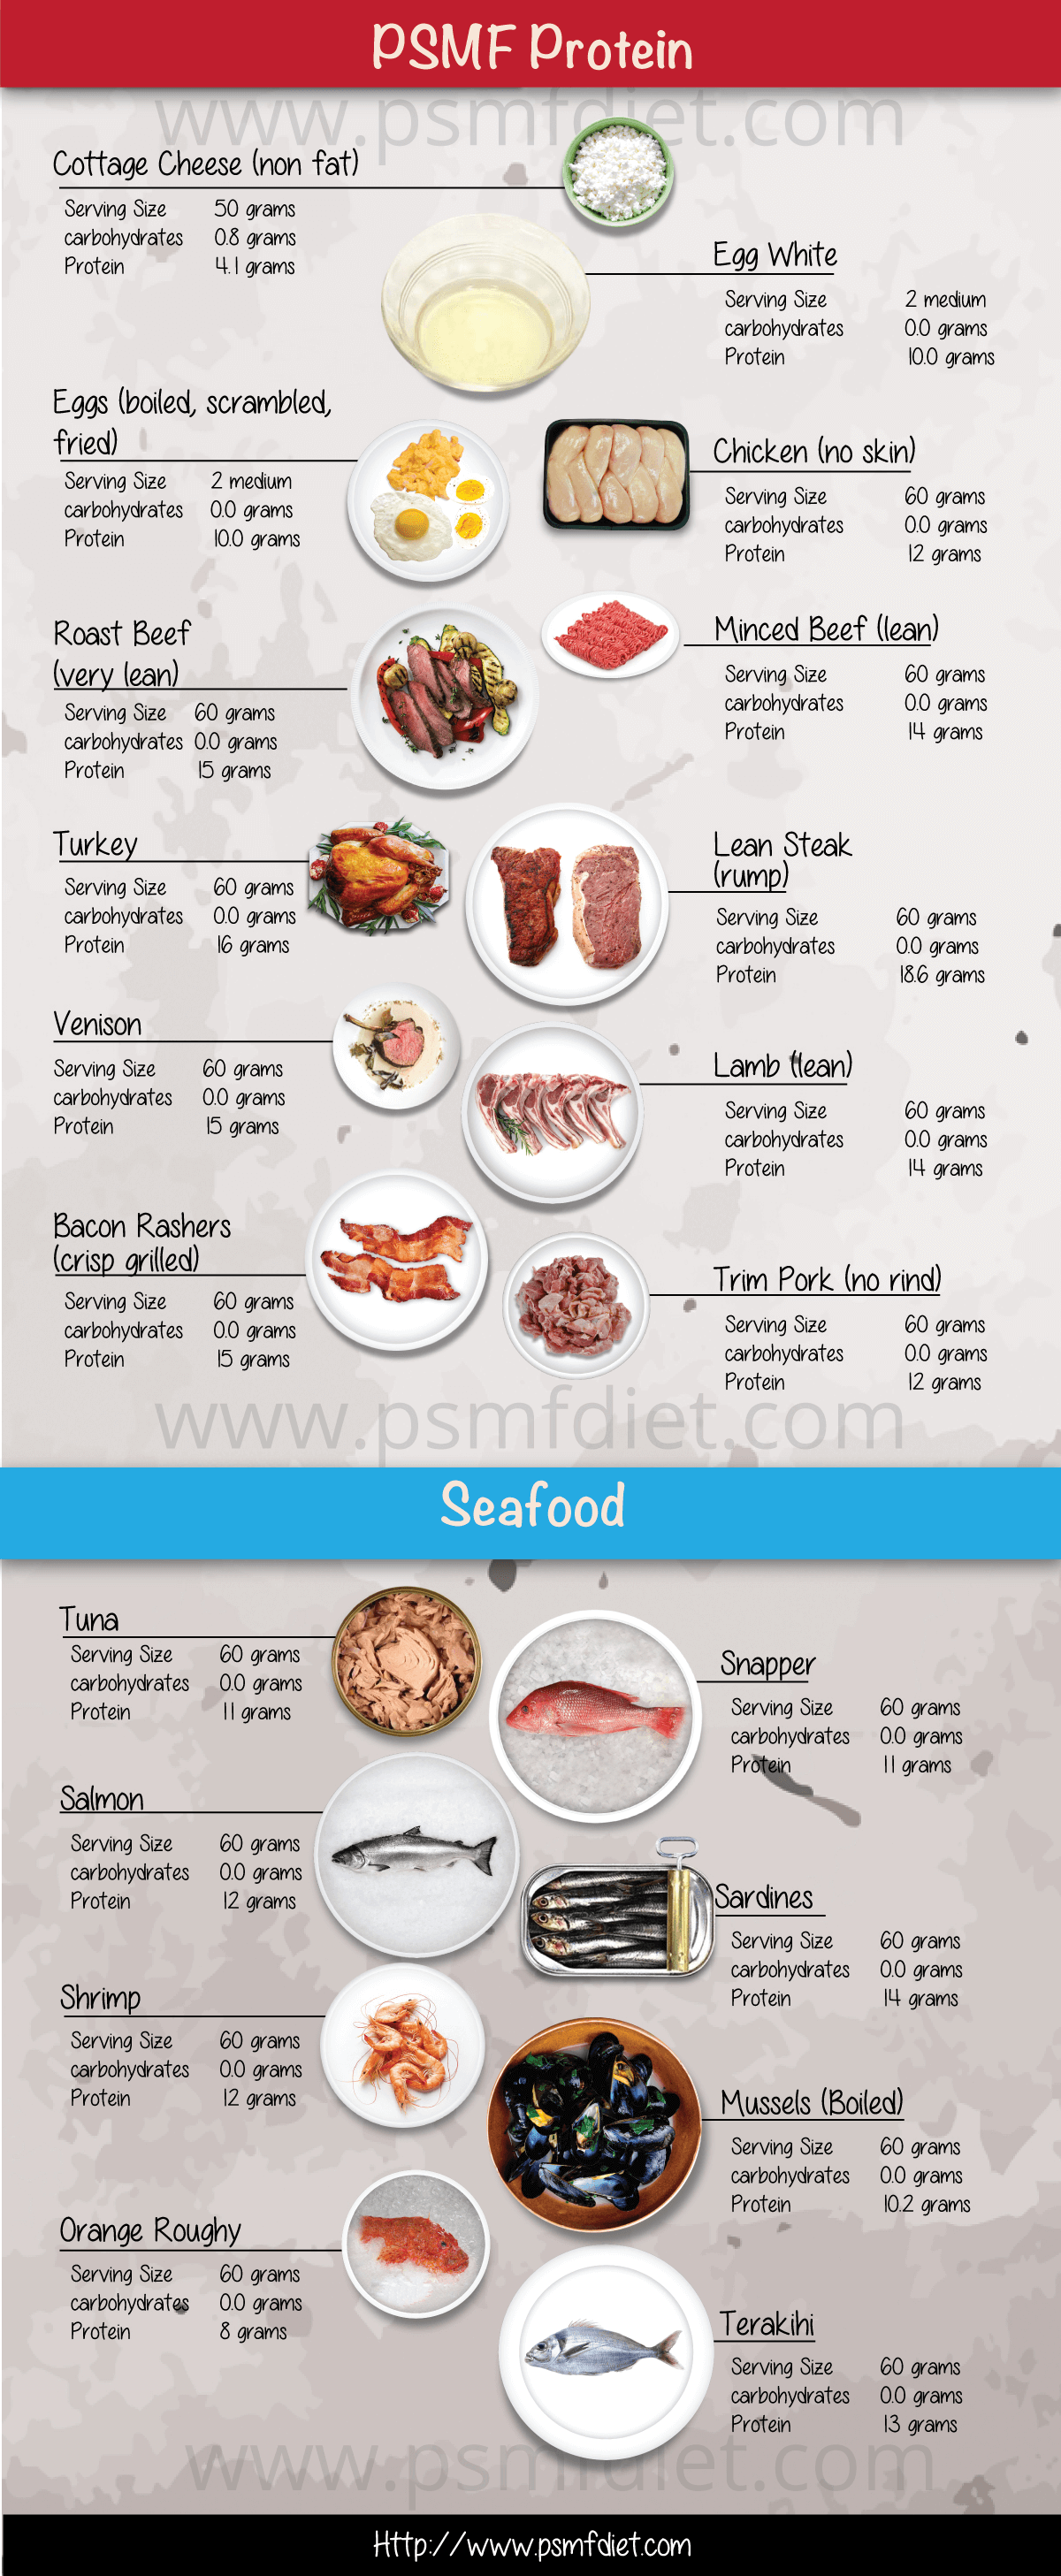 Psmf Protein Sources